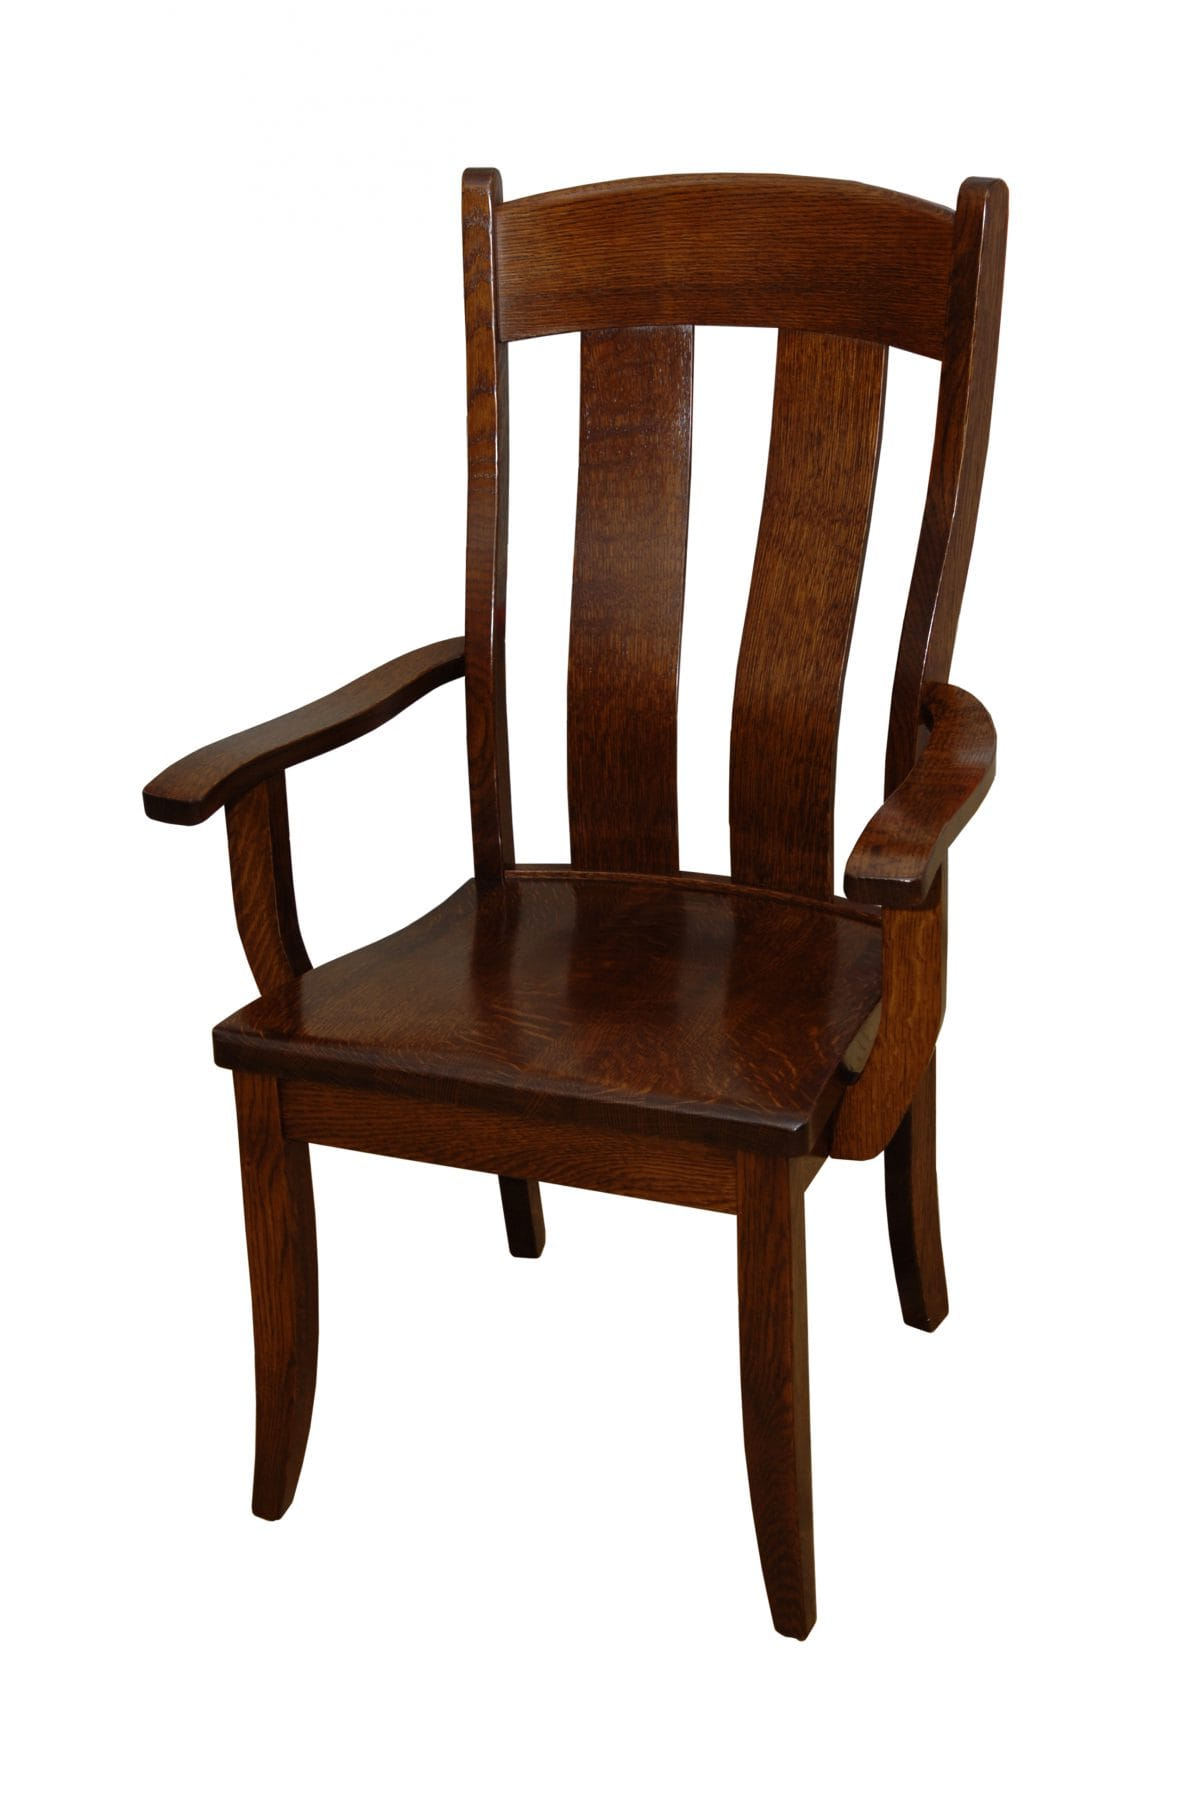 Photo of: HLW Austin Side Chair